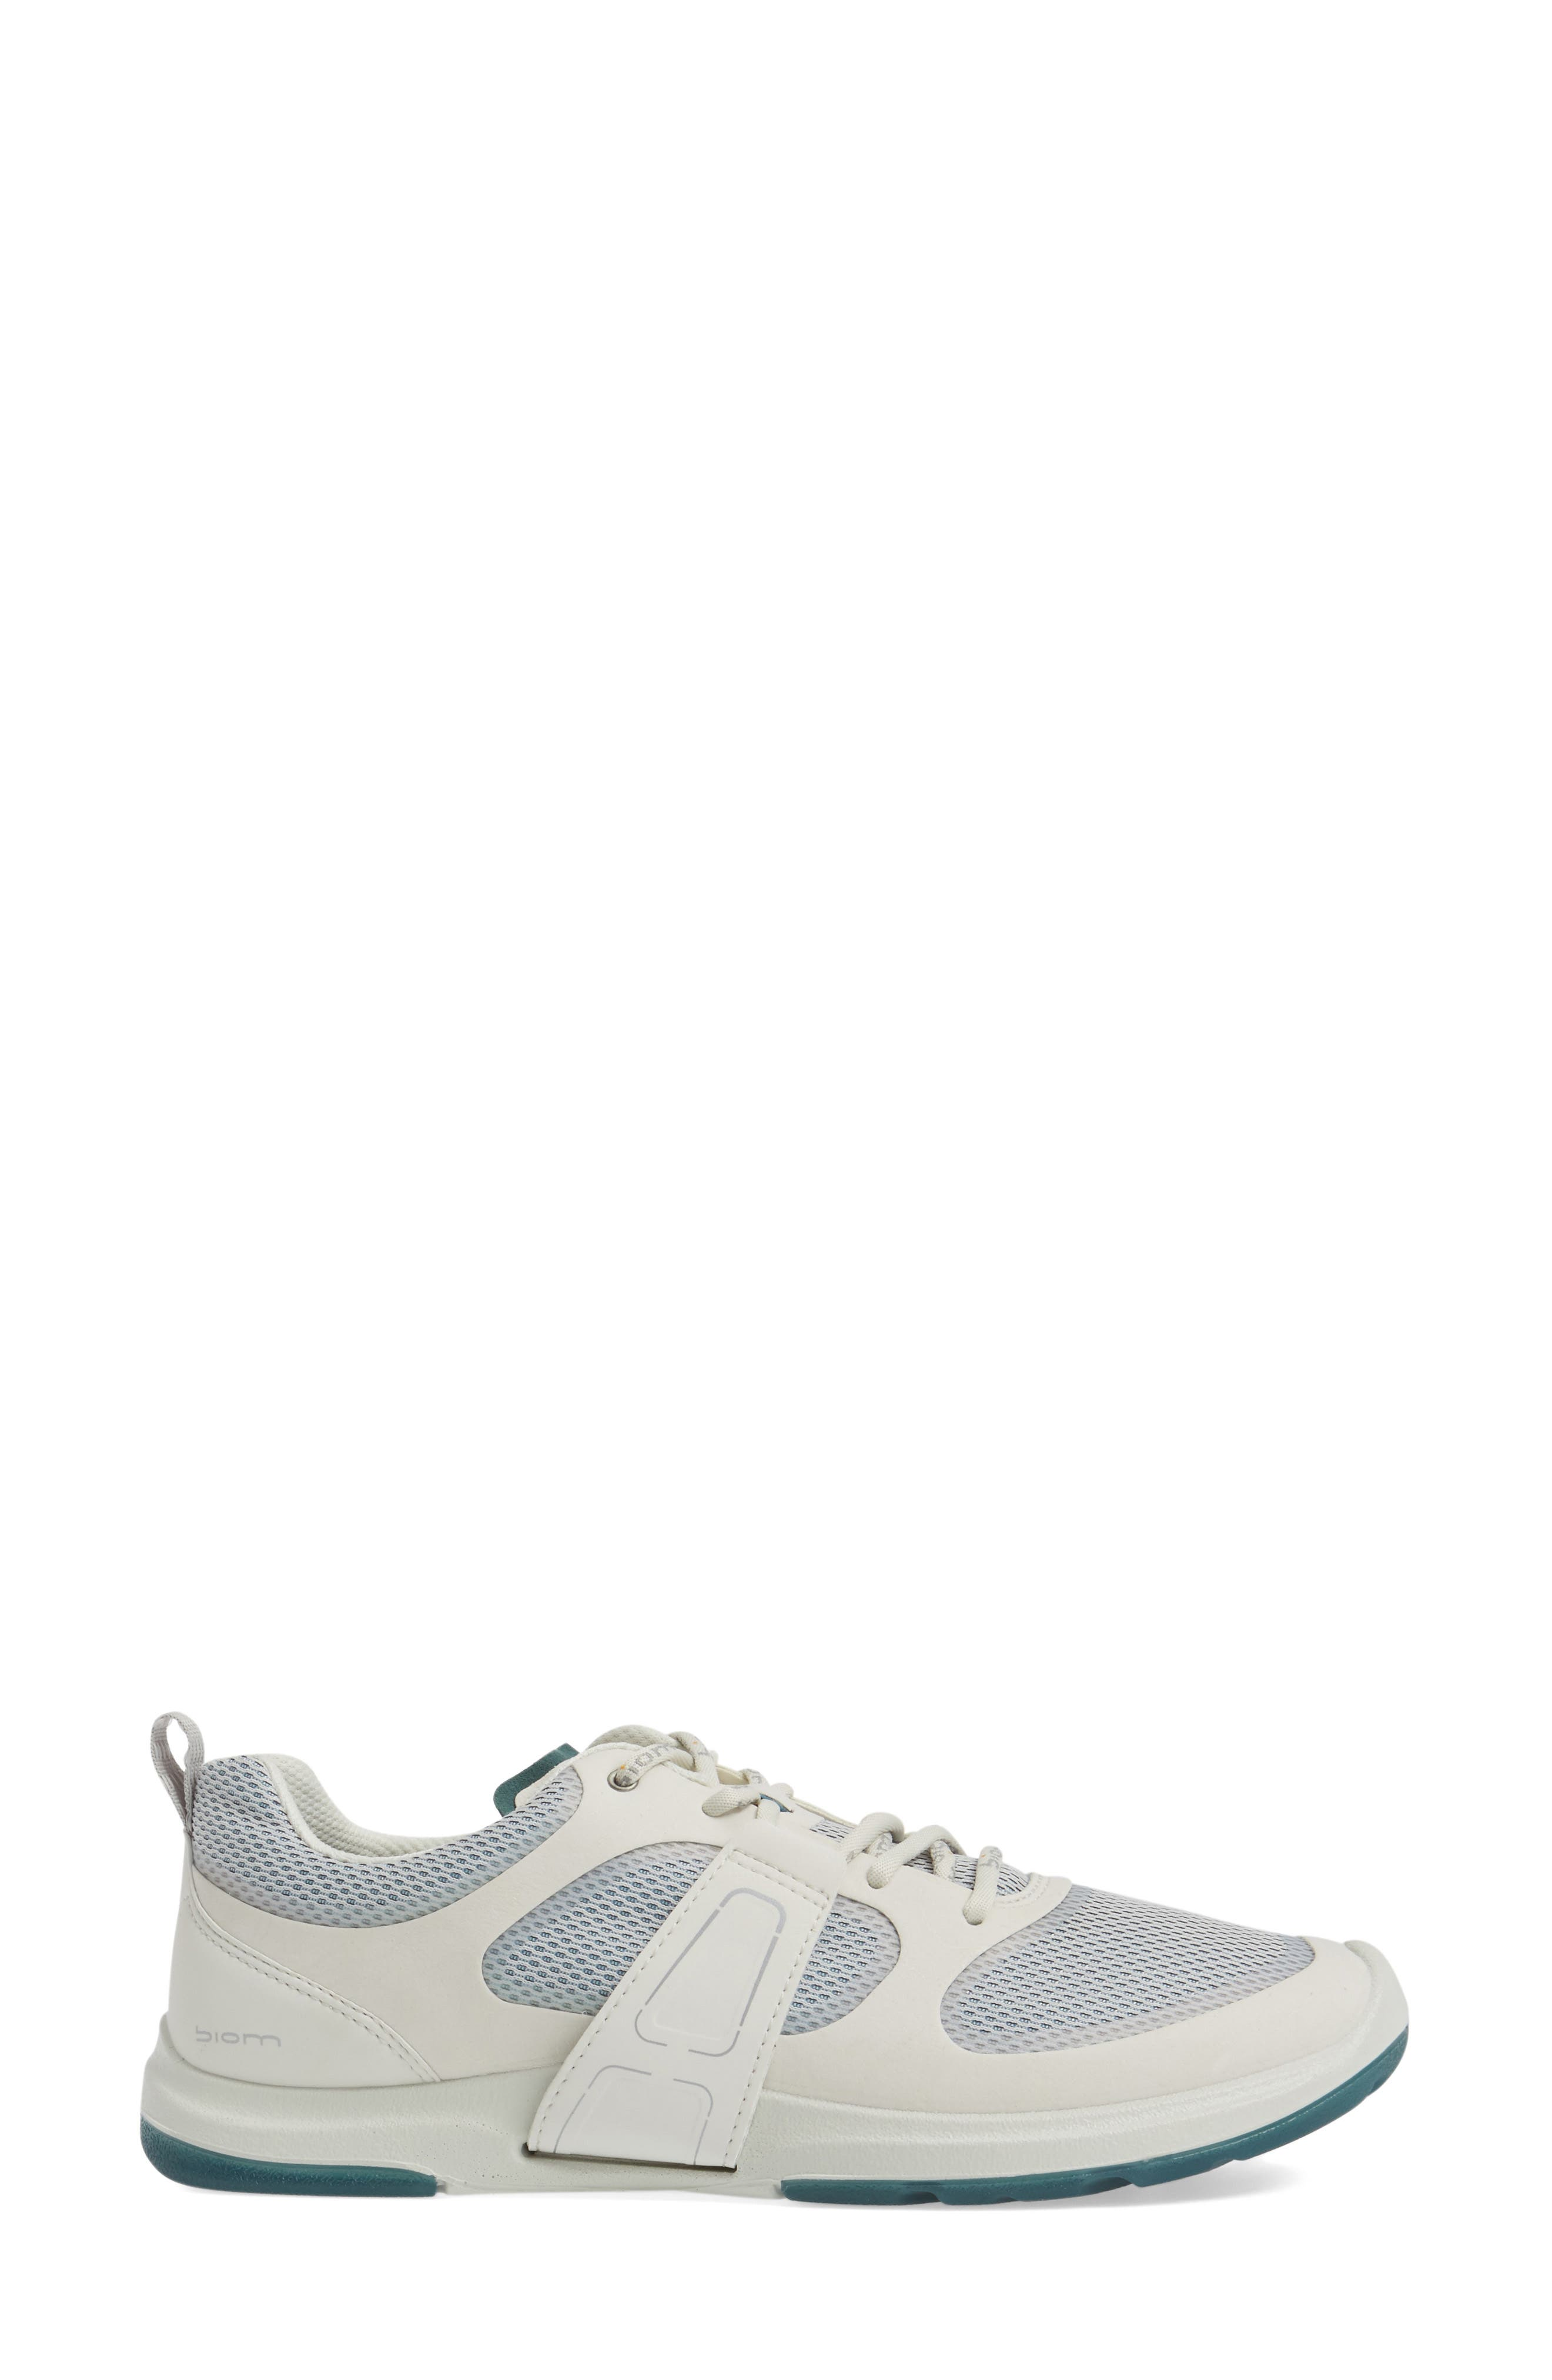 BIOM Amrap Sneaker,                             Alternate thumbnail 3, color,                             SHADOW WHITE LEATHER